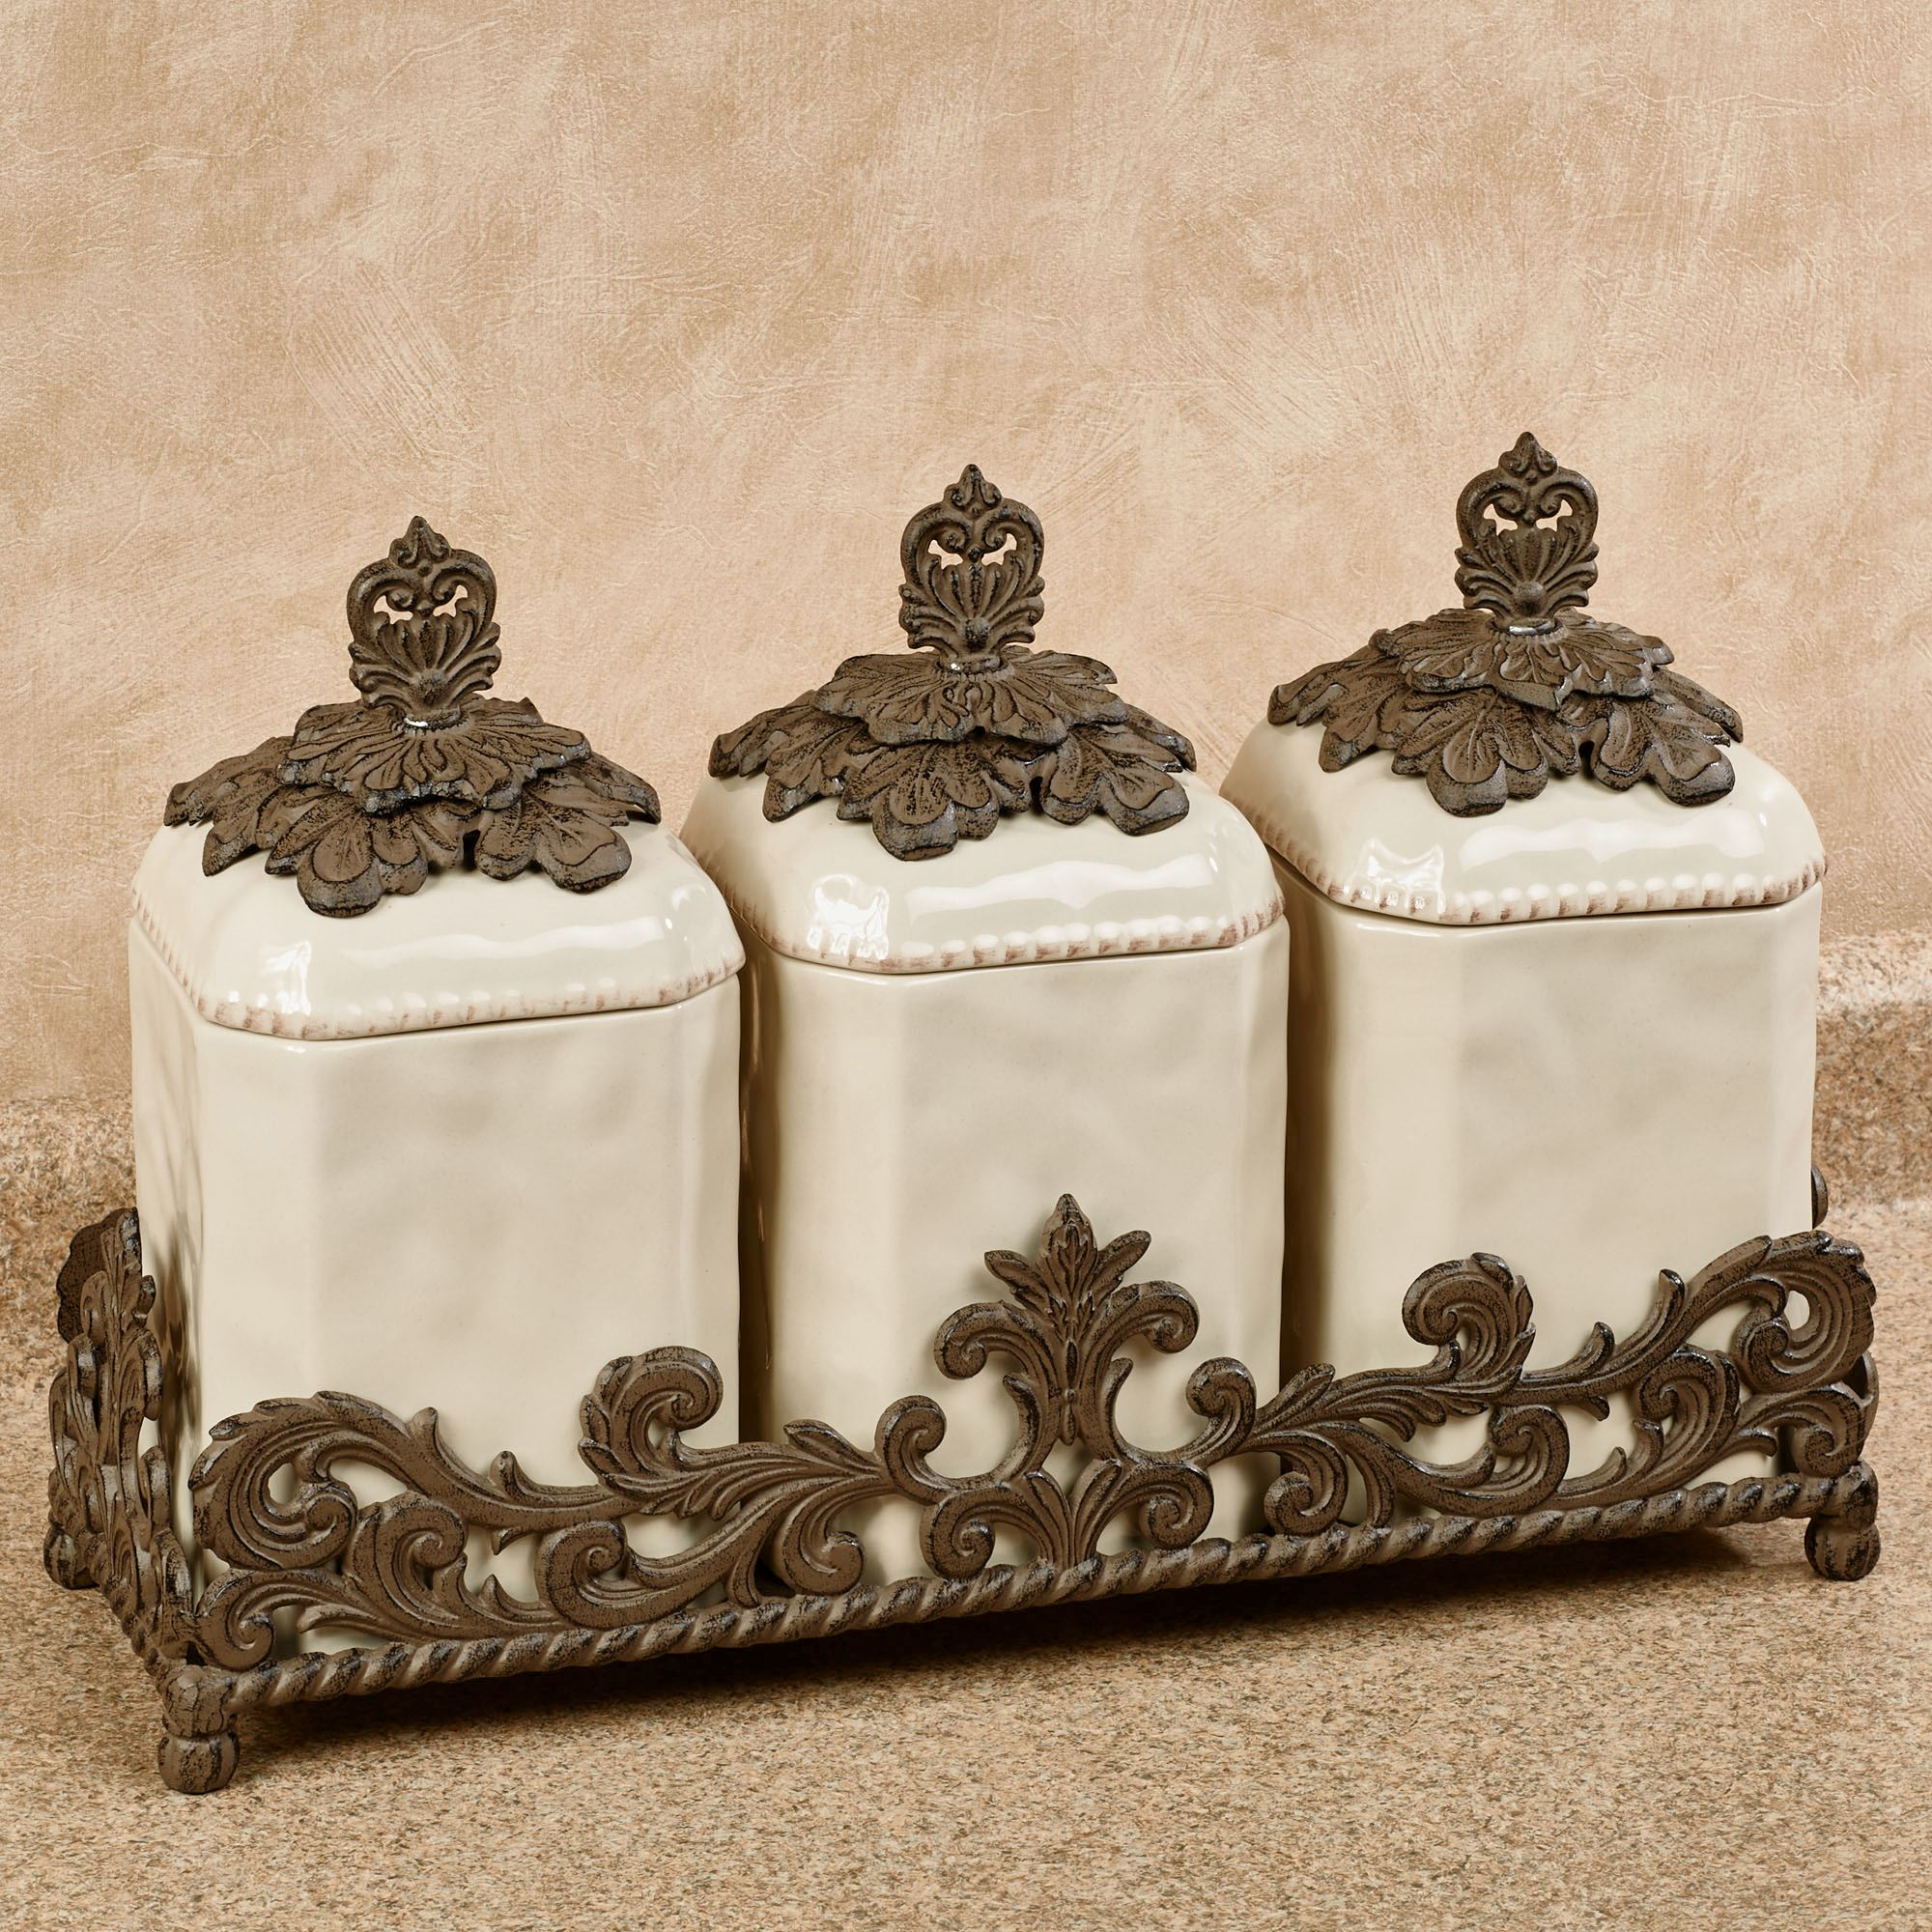 Provincial Kitchen Canisters In Holder Brown Four Piece Set. Click To Expand